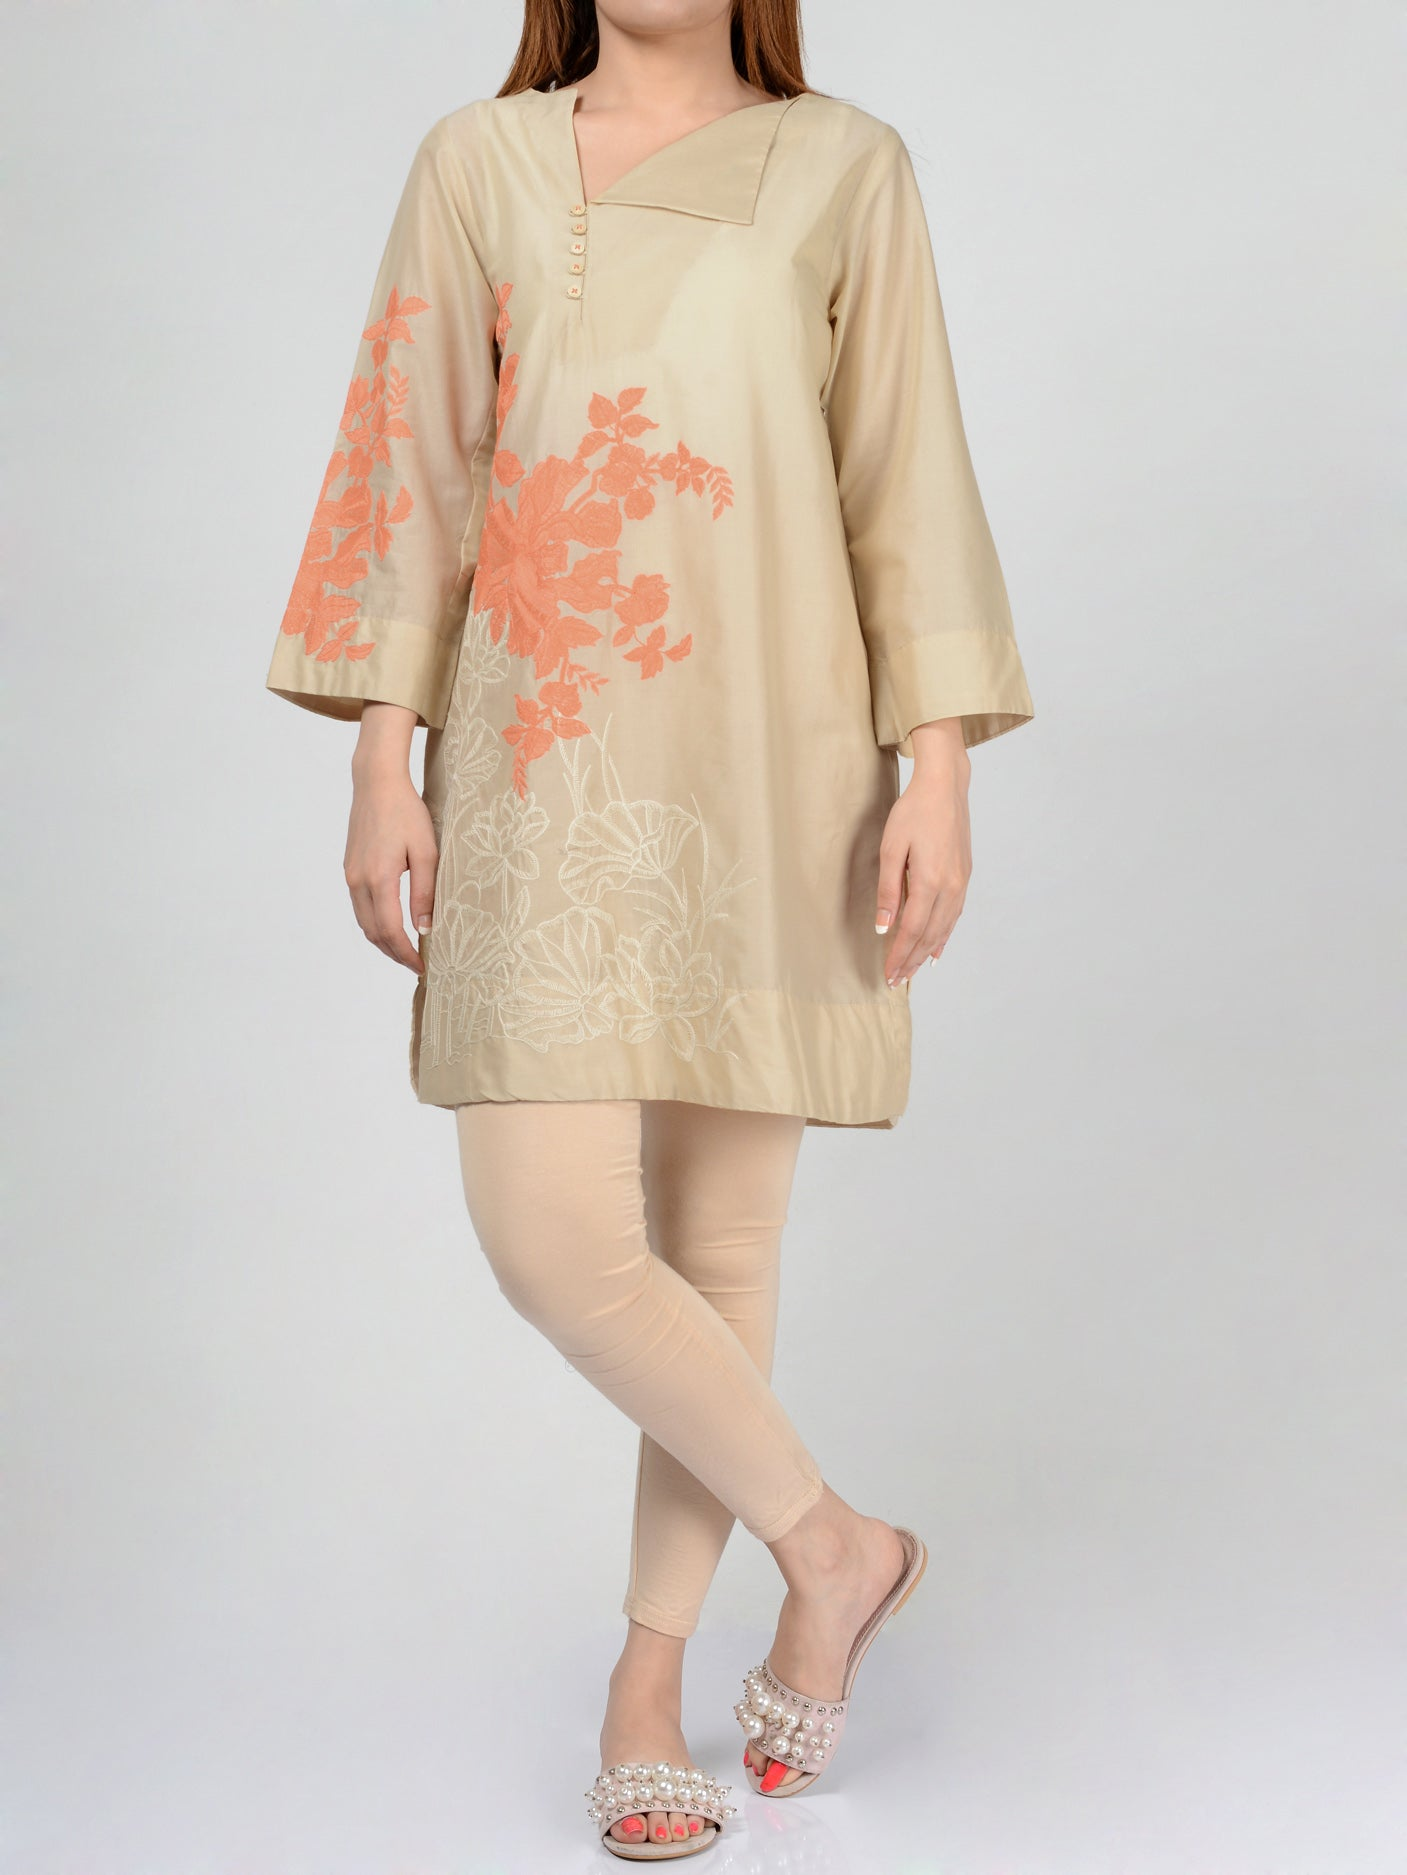 Pret Embroidered Lawn Shirt Online P0110 Limelight